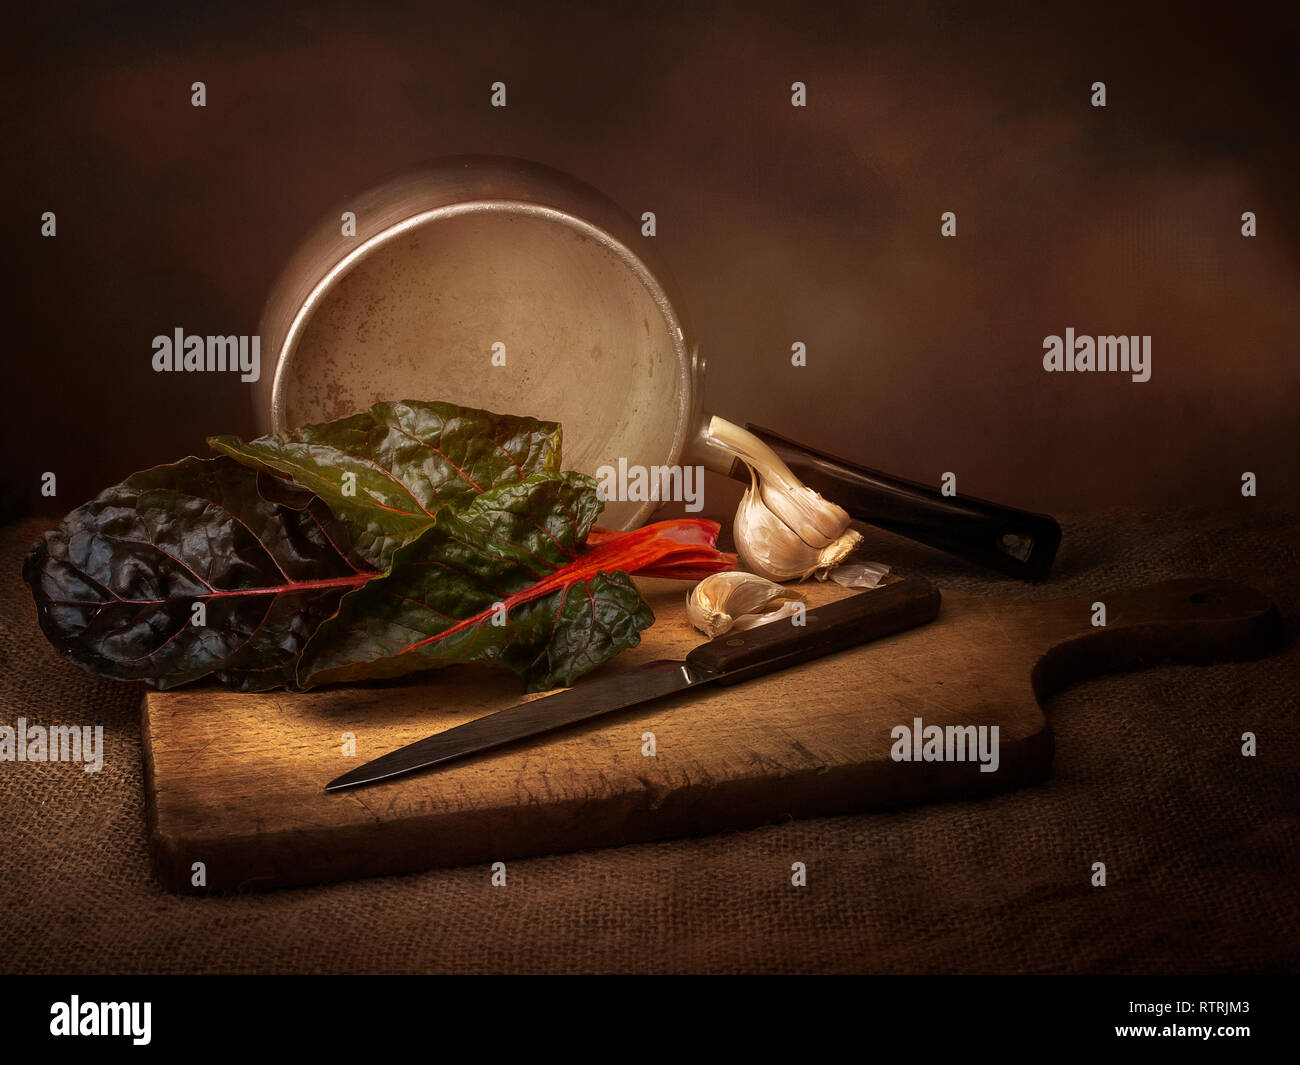 Ruby aka Swiss chard vegetable food preparation, still life with garlic. Chiaroscuro style light painting. Beta vulgaris. - Stock Image